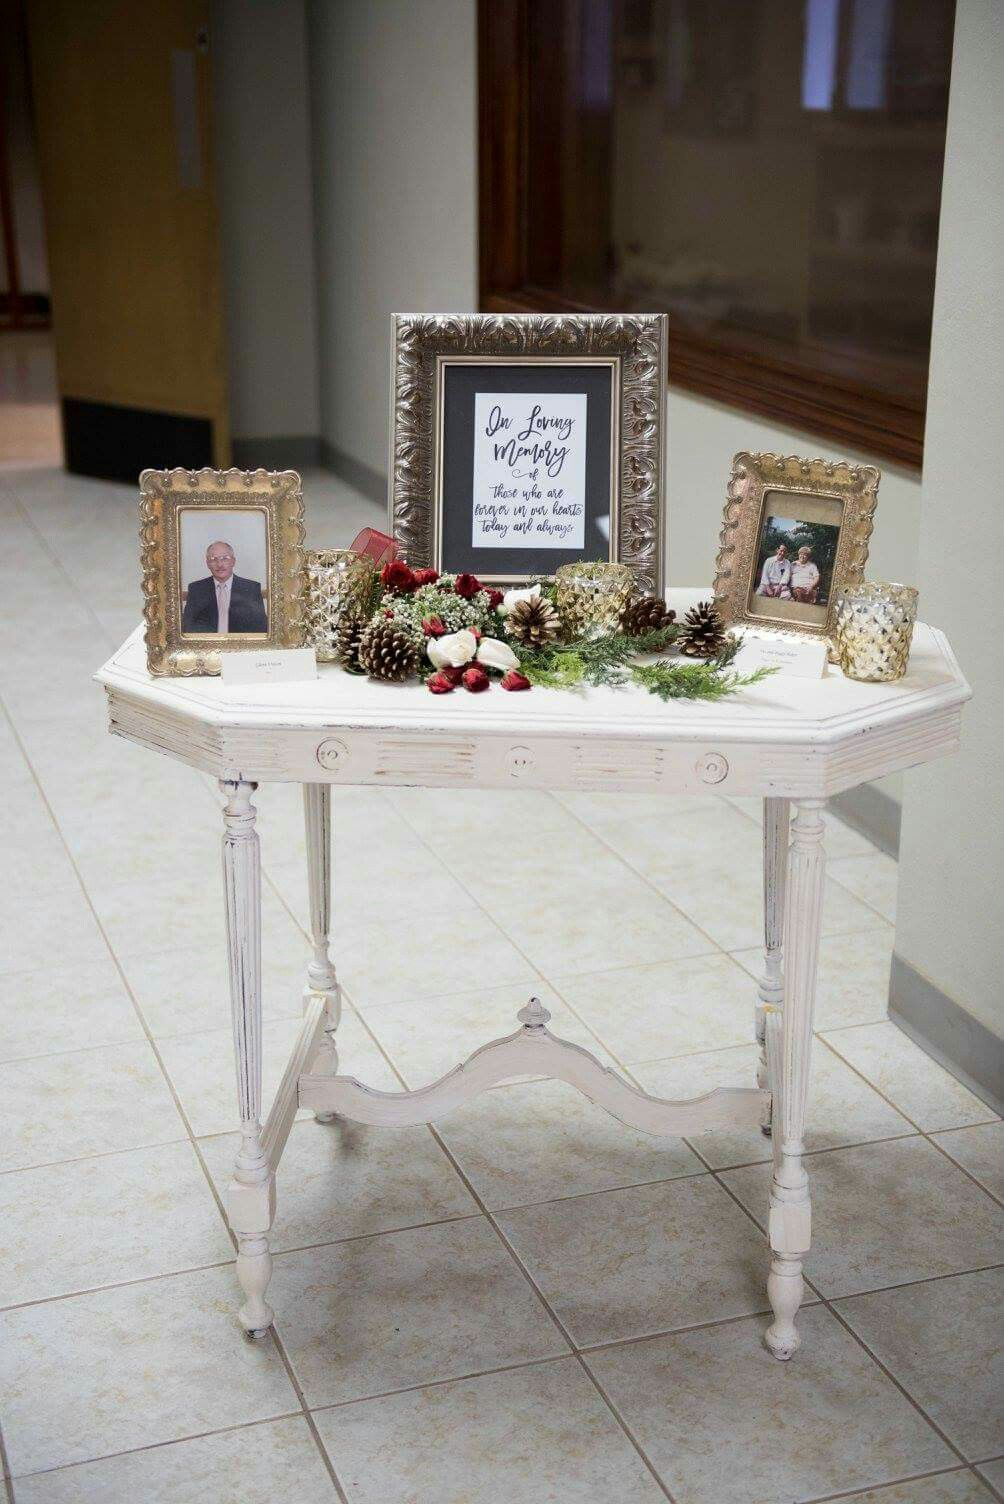 Exceptionnel In Loving Memory Table At Wedding. Wedding Memory Table